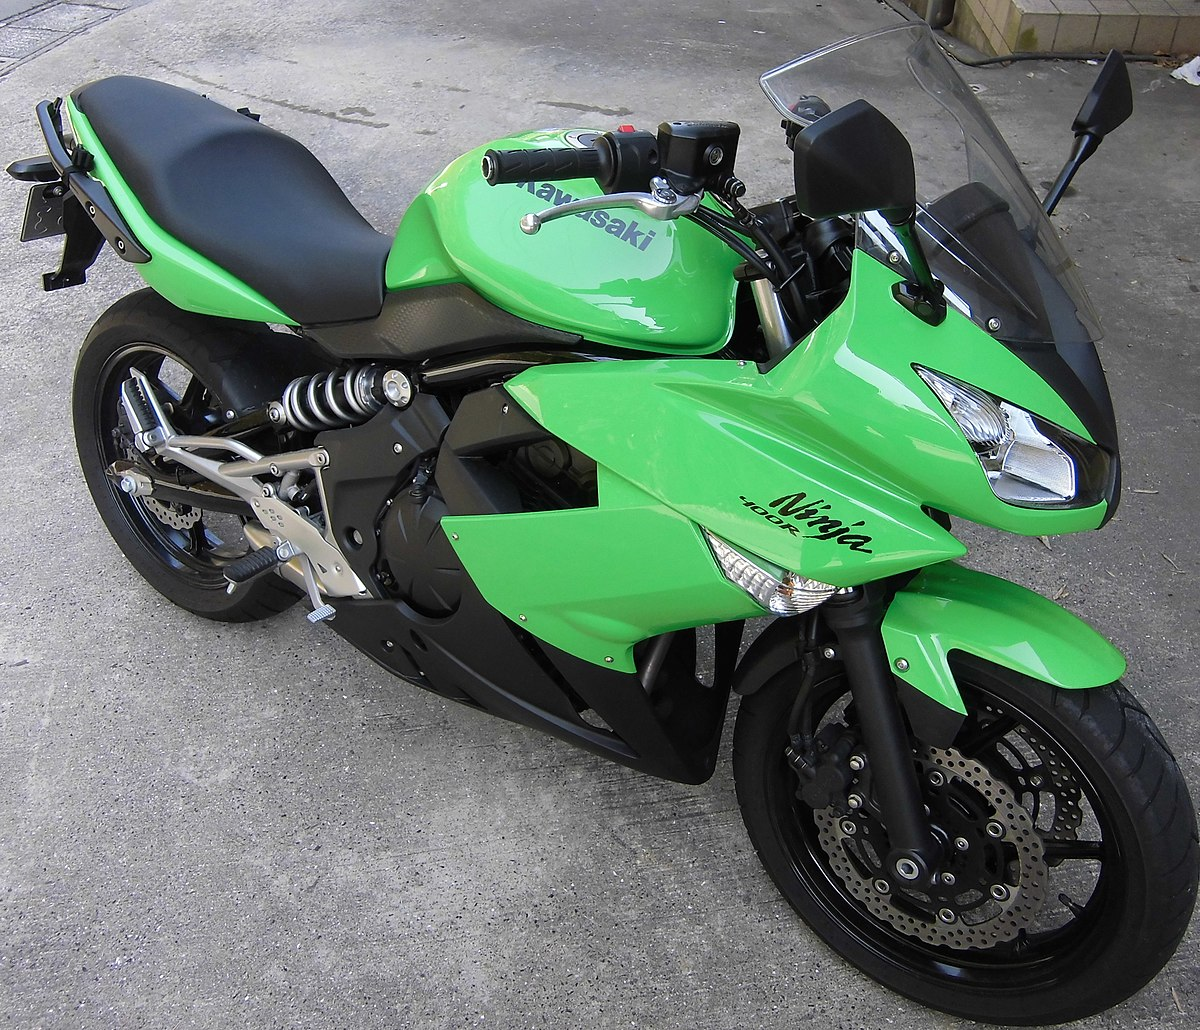 kawasaki ninja 400r wikipedia. Black Bedroom Furniture Sets. Home Design Ideas